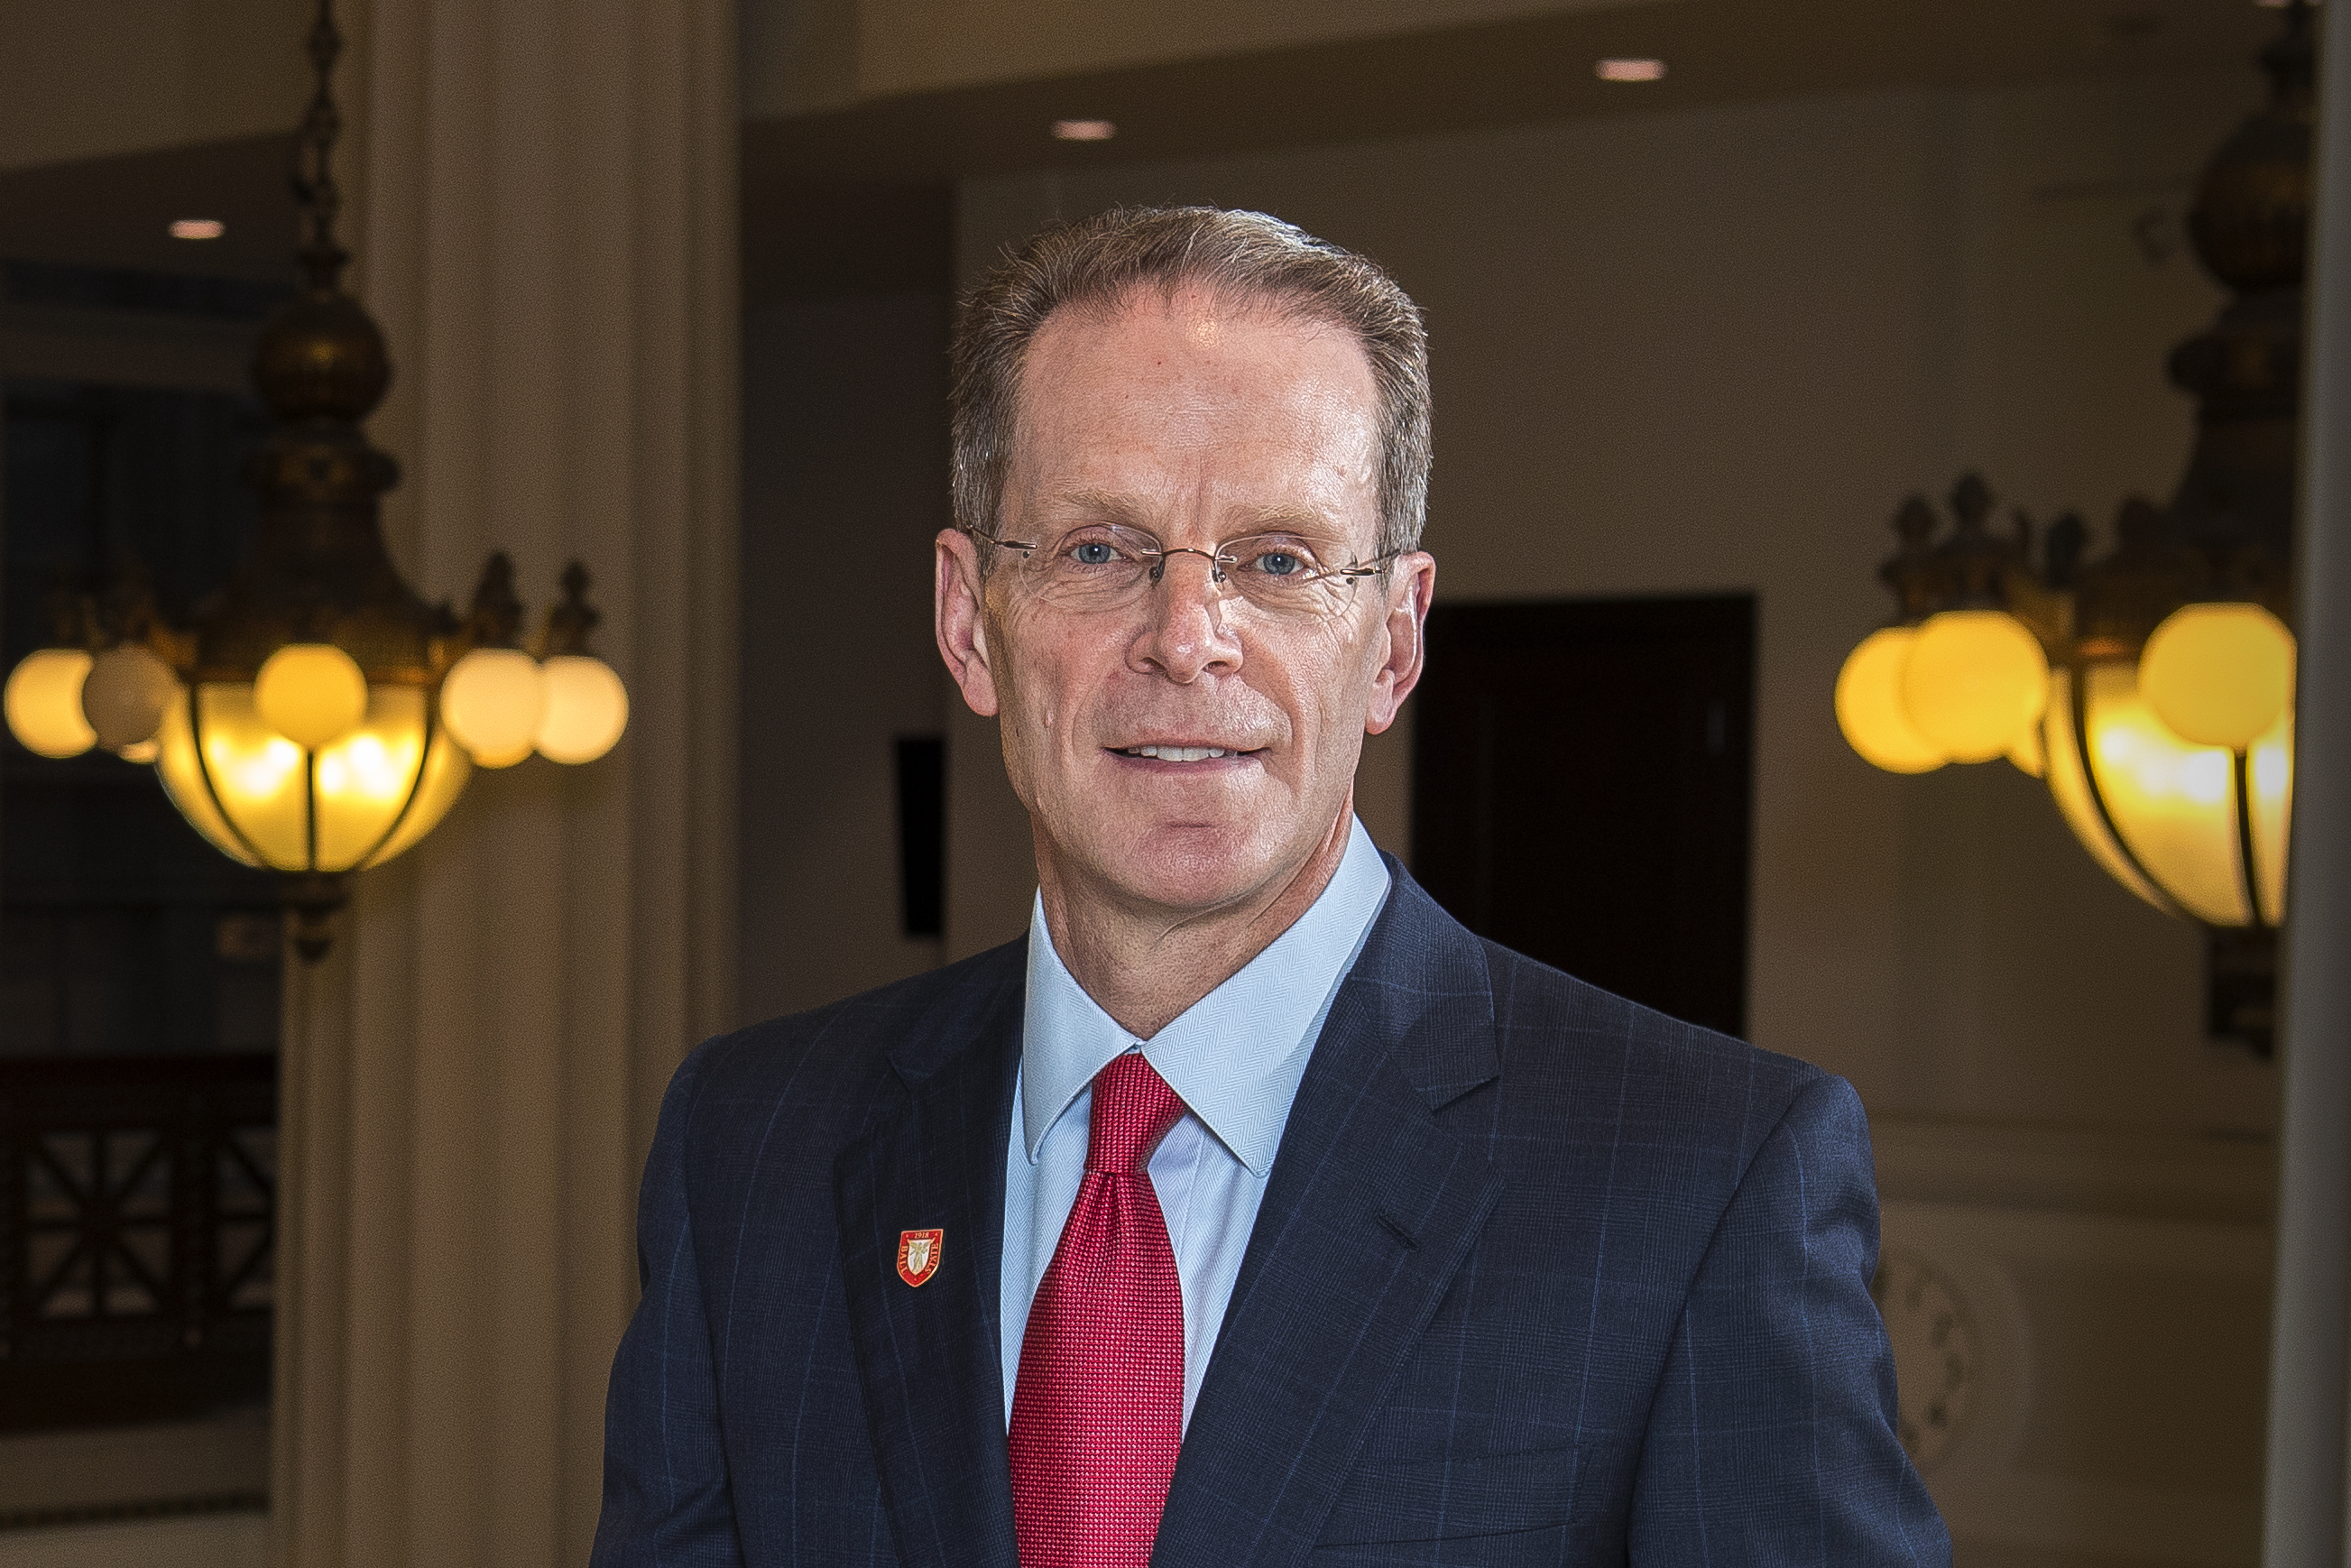 Geoffrey Mearns comes to Ball State University from Northern Kentucky University.